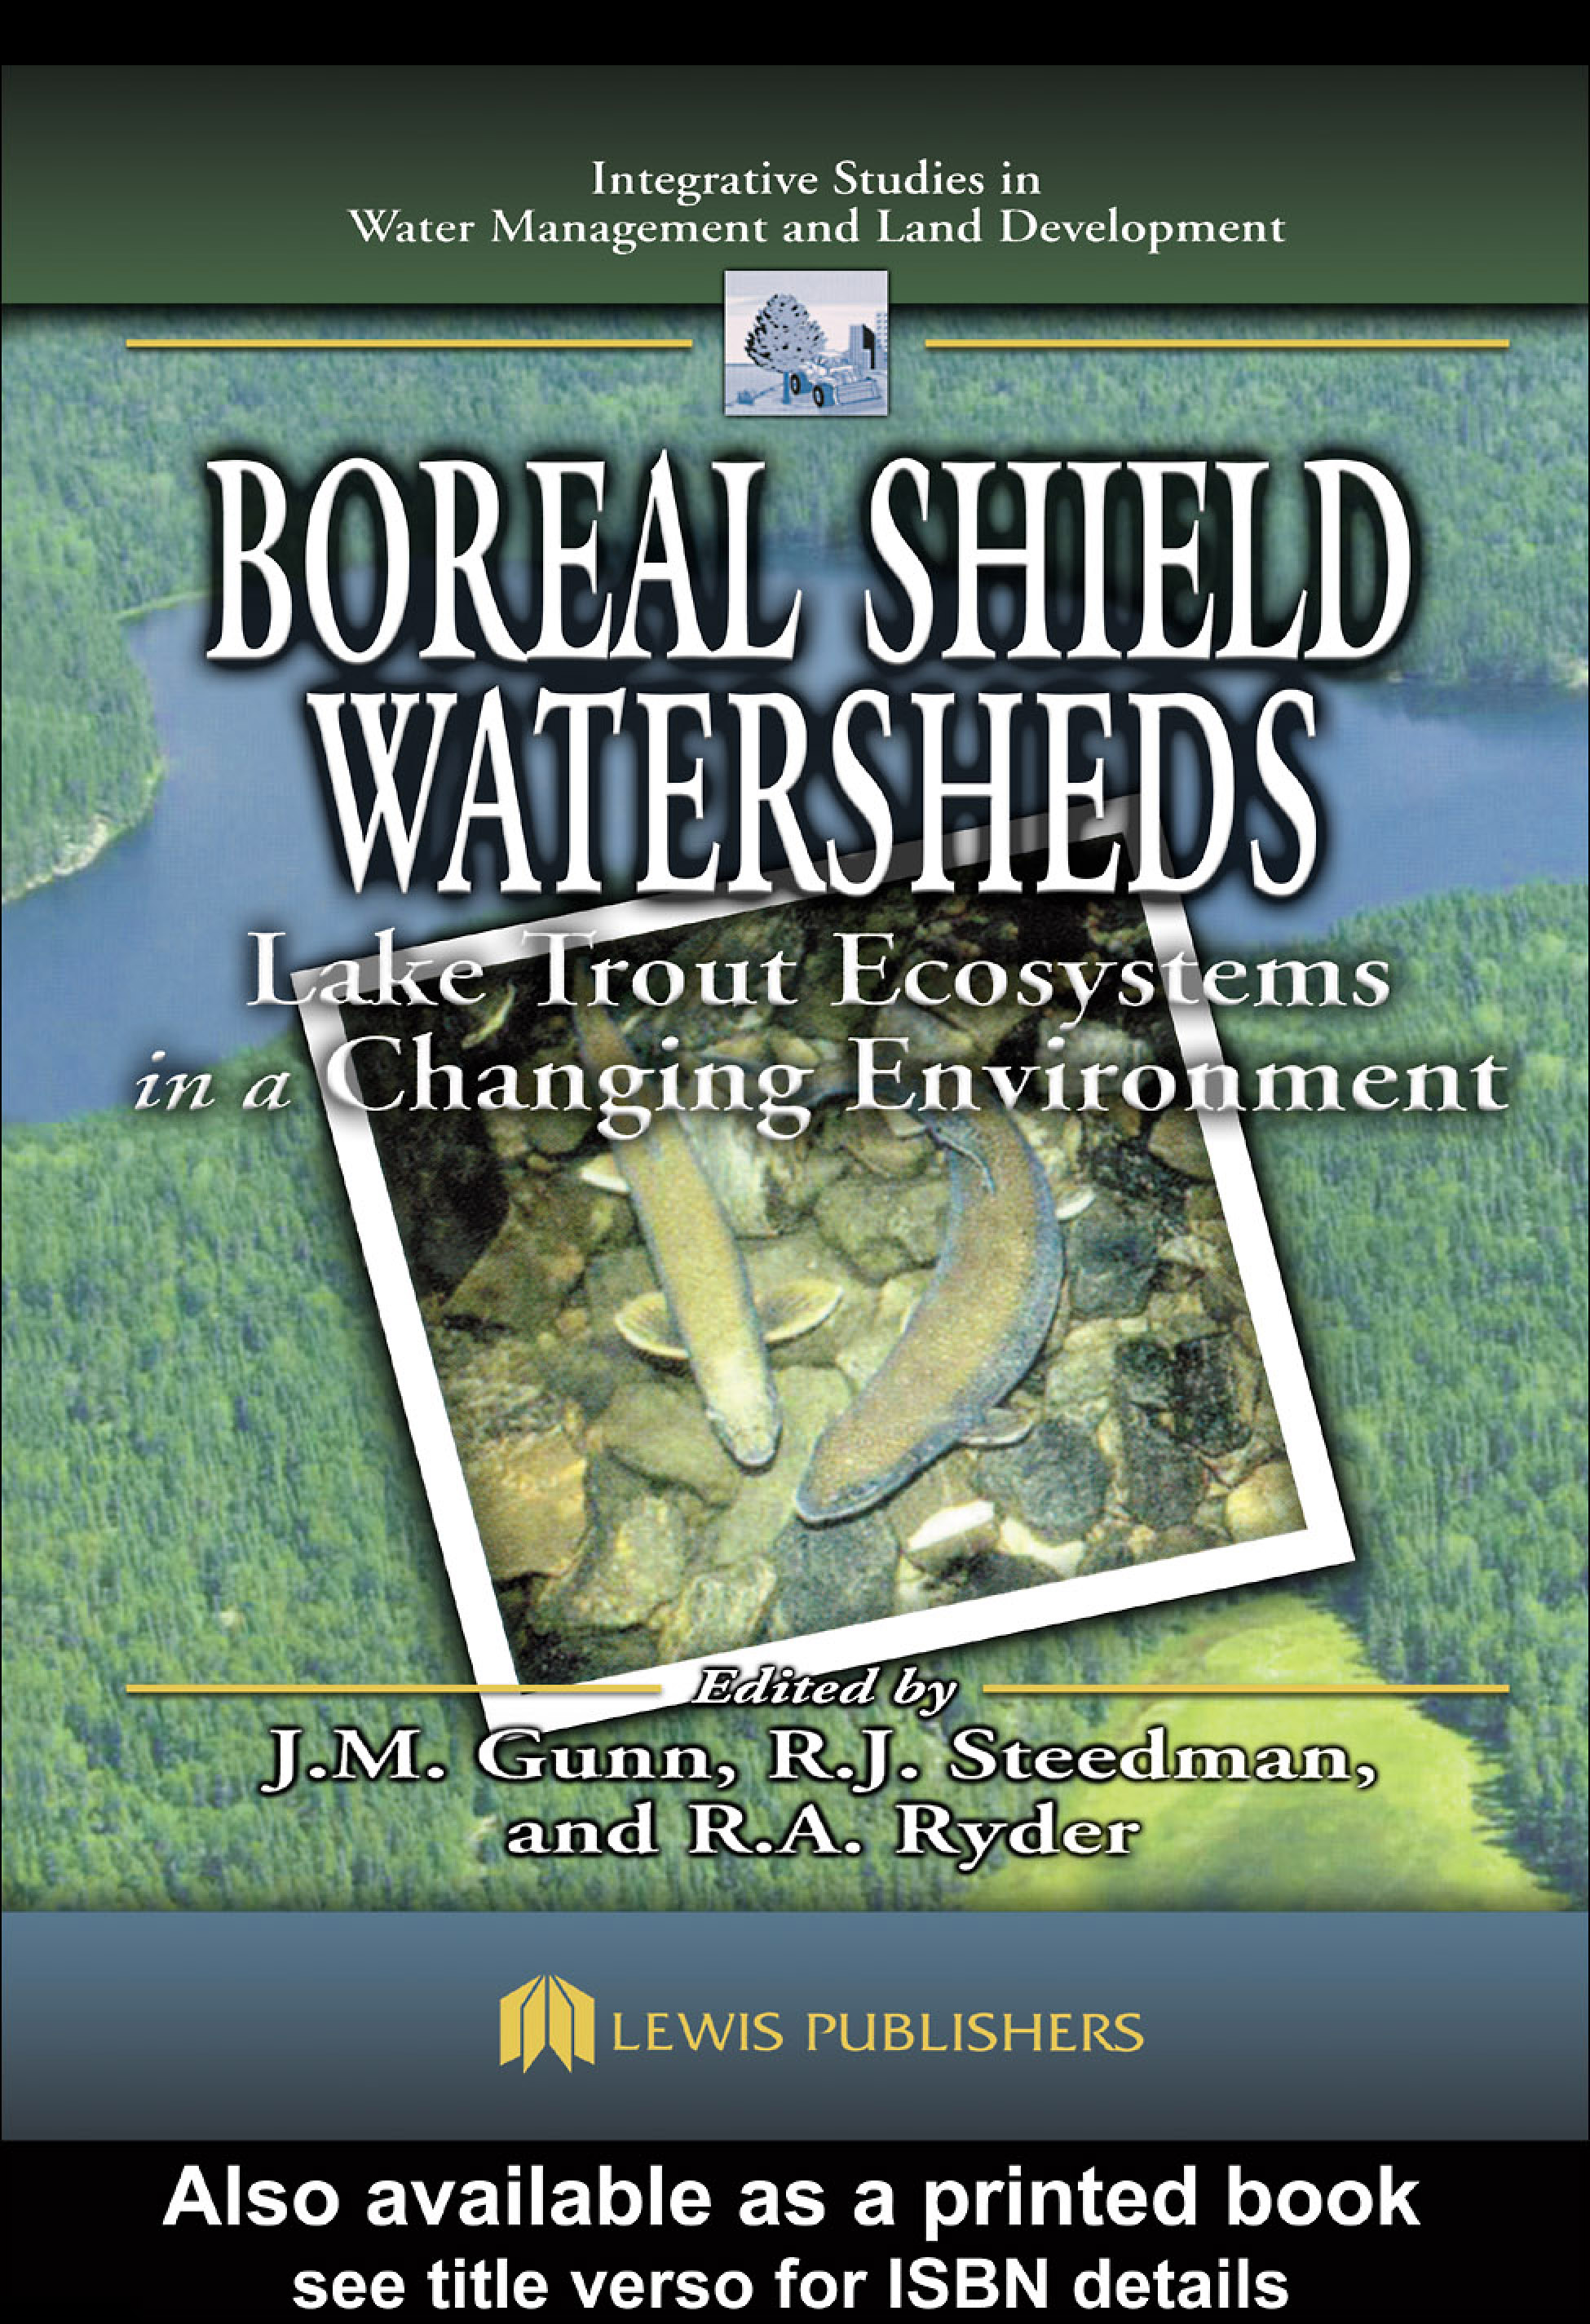 Boreal Shield Watersheds: Lake Trout Ecosystems in a Changing Environment book cover